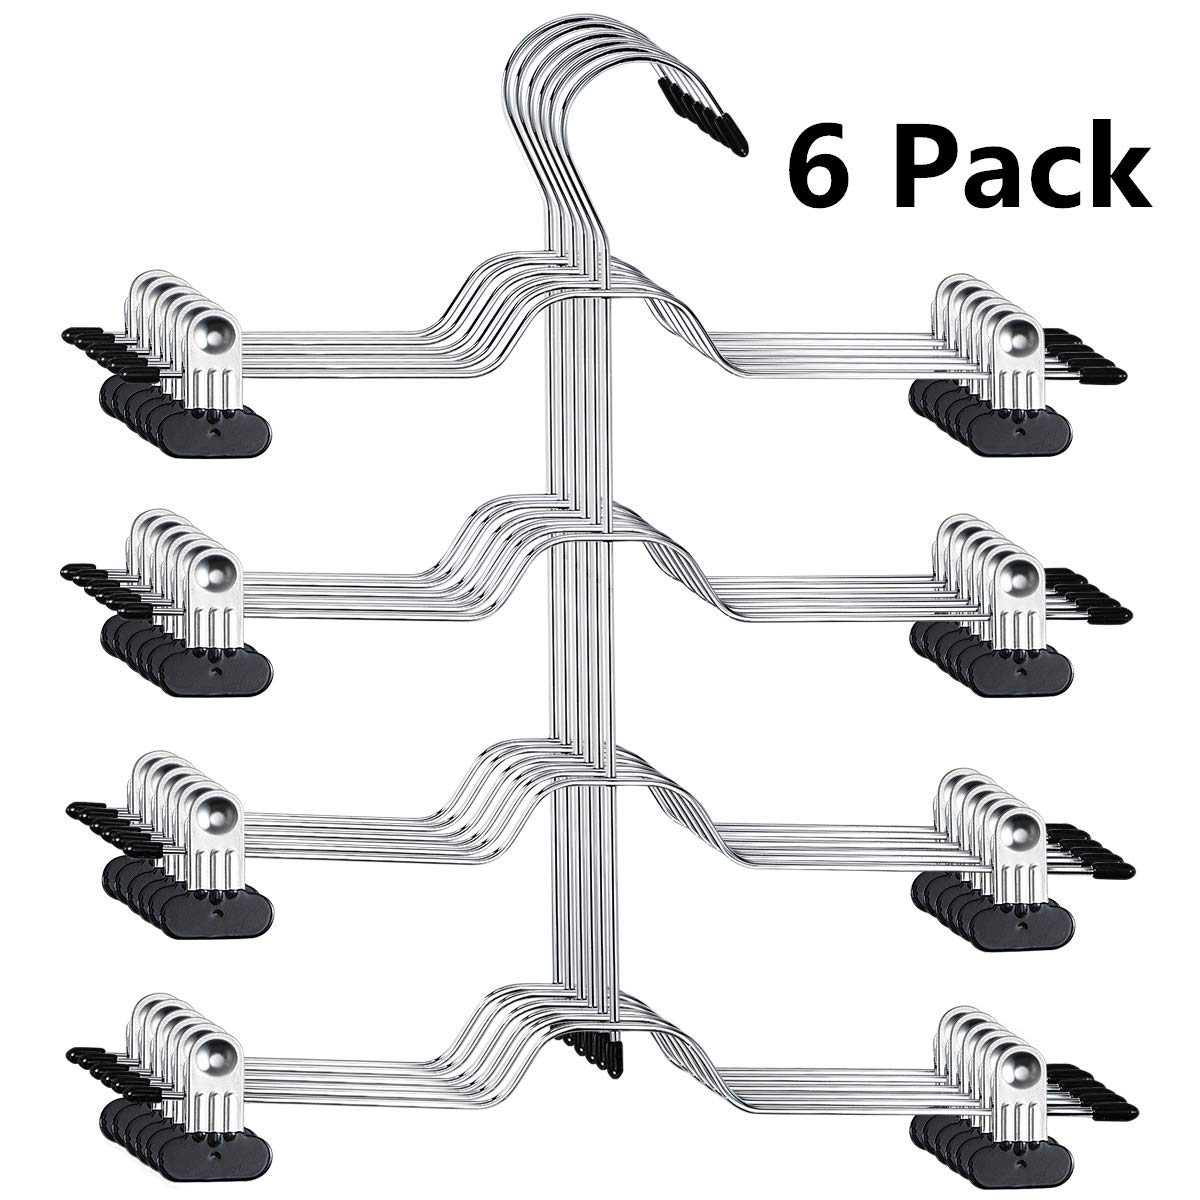 HOMEIDEAS Space Saving Pants Hangers, 4 Tier Kids Pants/Skirt Hangers with 8 Clips - Metal Multi Layers Non Slip Trousers Hangers for Skirts Pants Slacks Jeans, Pack of 6 by HOMEIDEAS